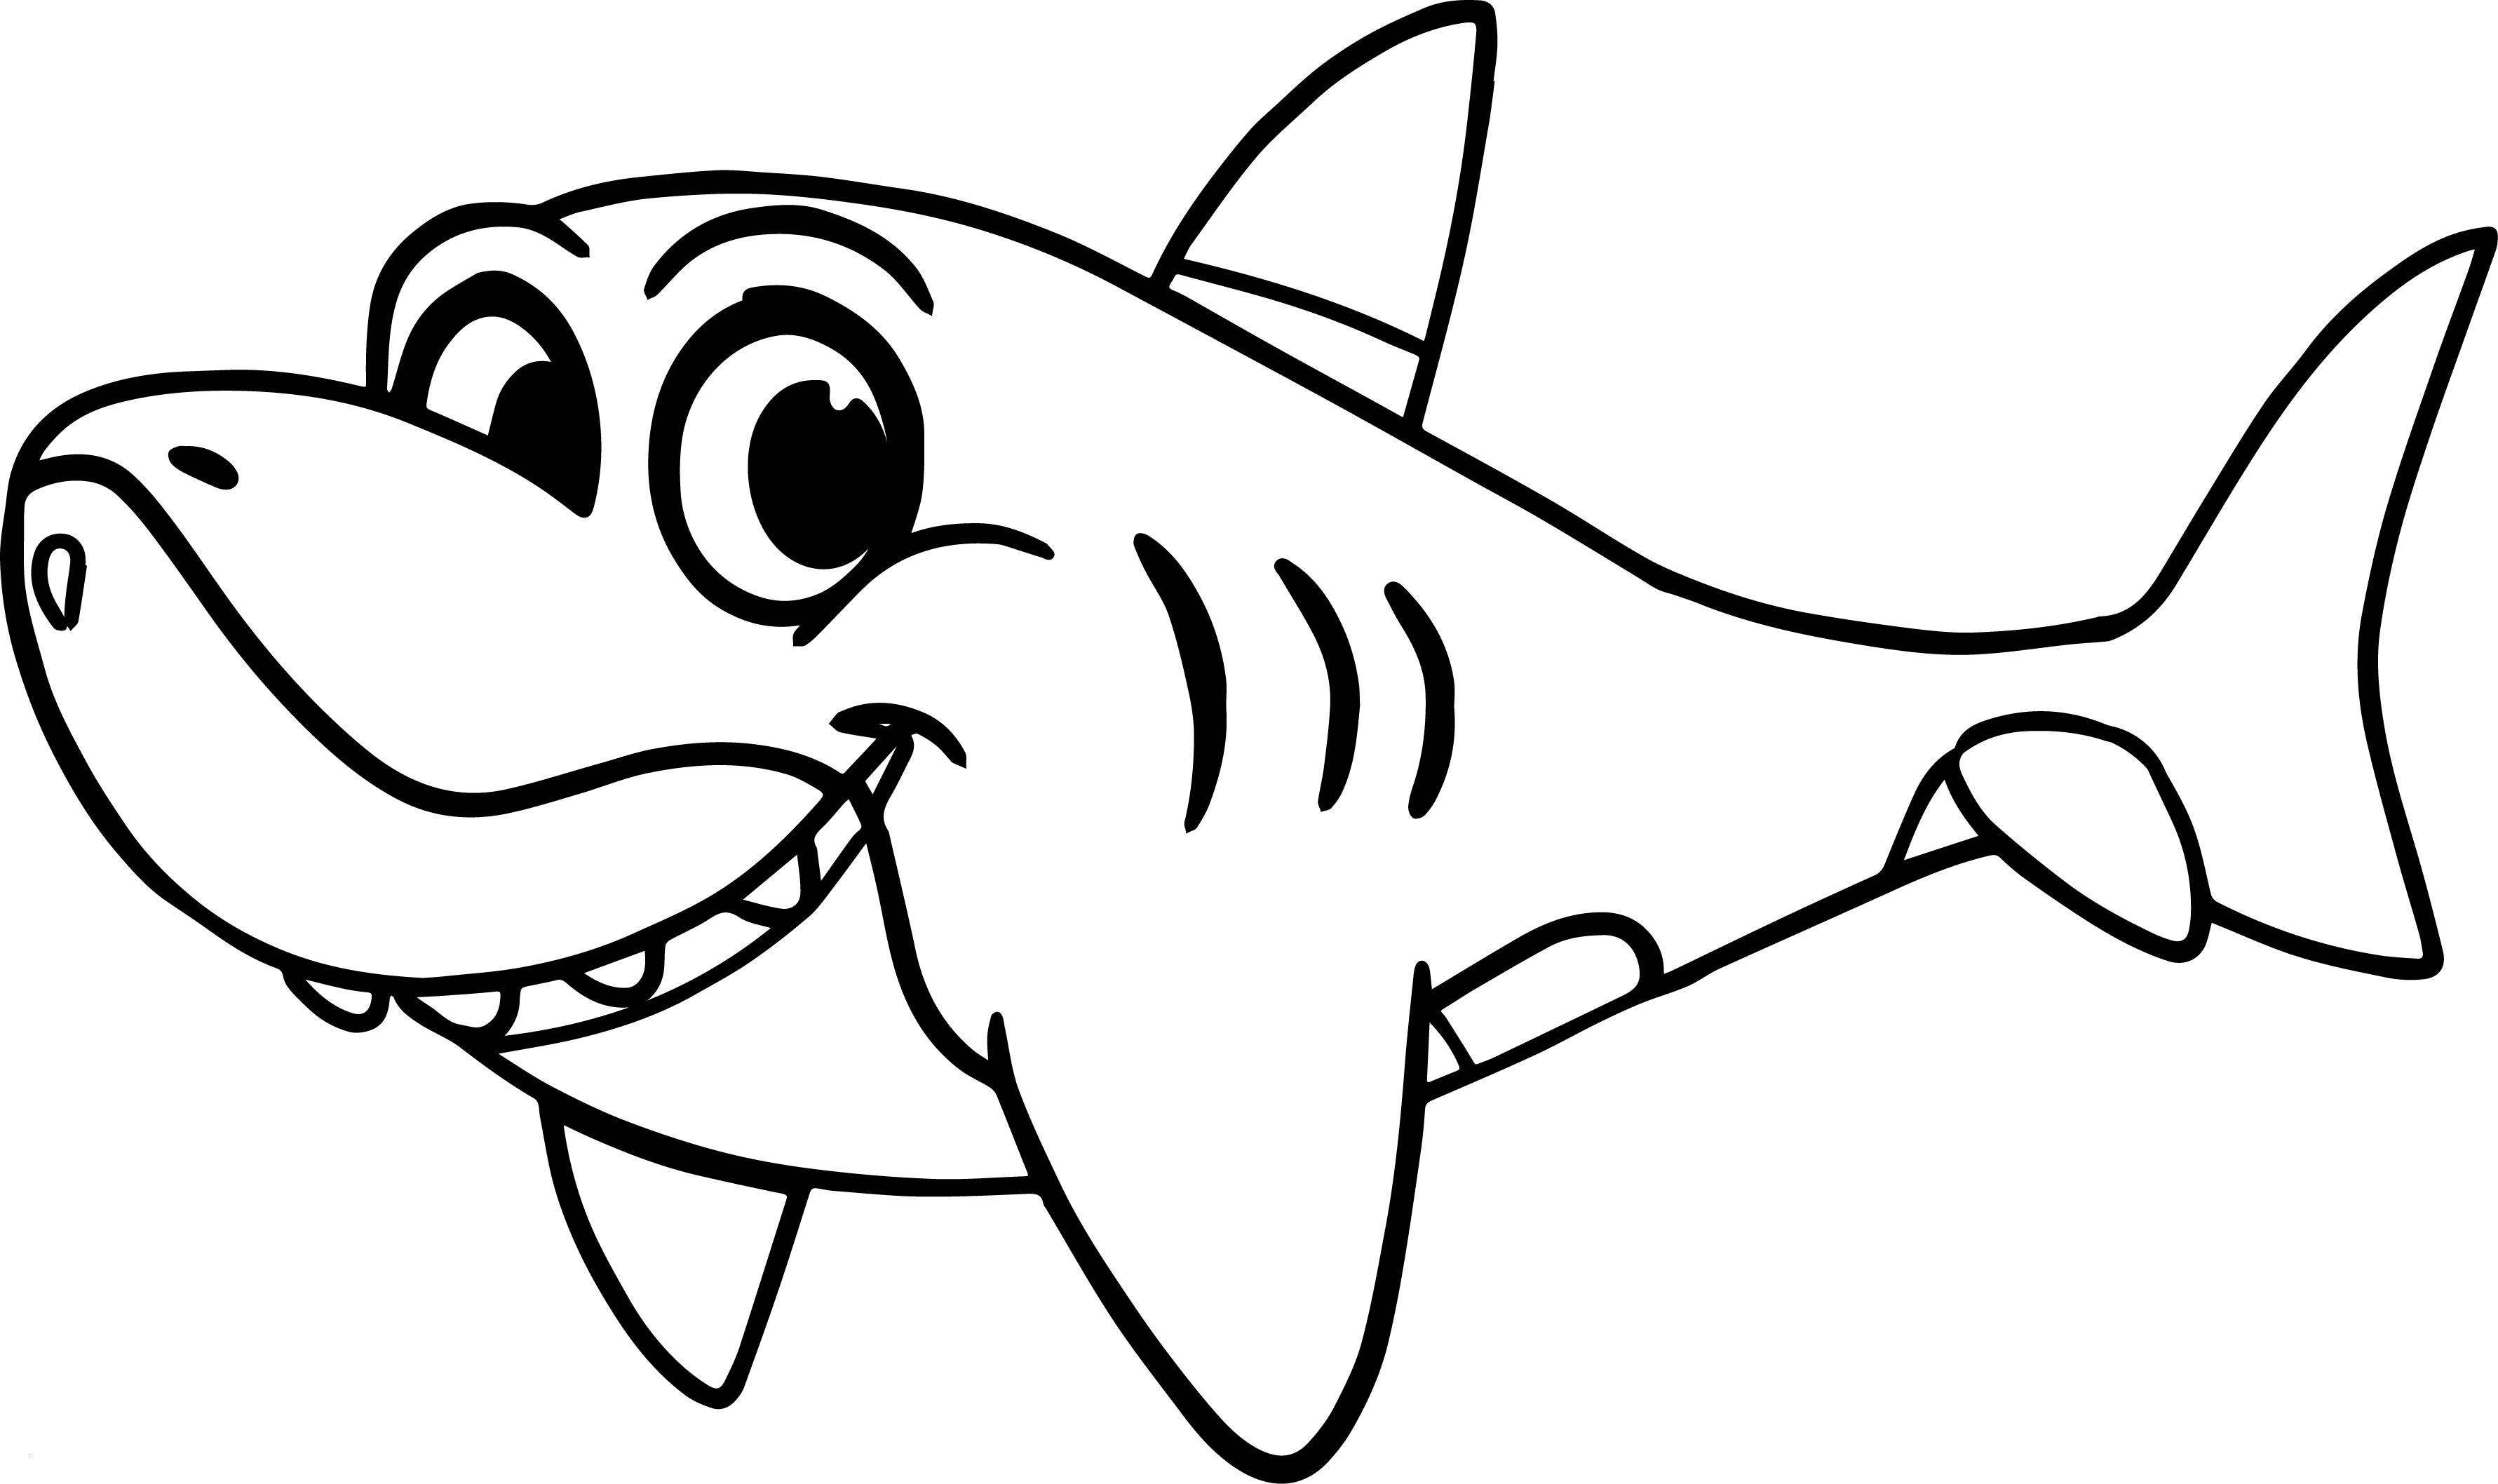 shark pictures to colour in great white shark coloring pages to download and print for pictures shark in colour to